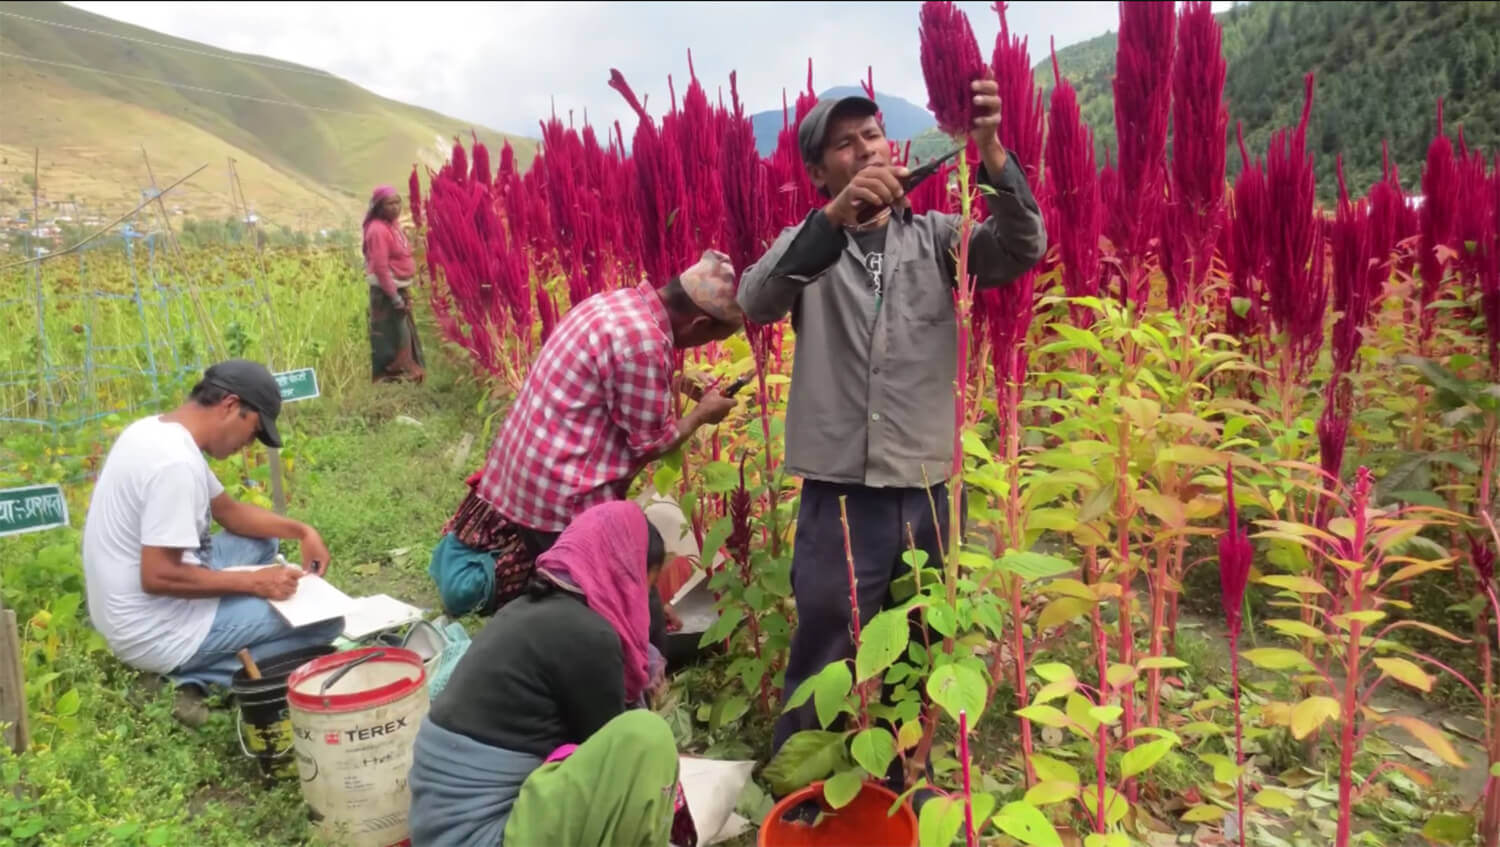 The superfoods of the Andes and the Himalaya